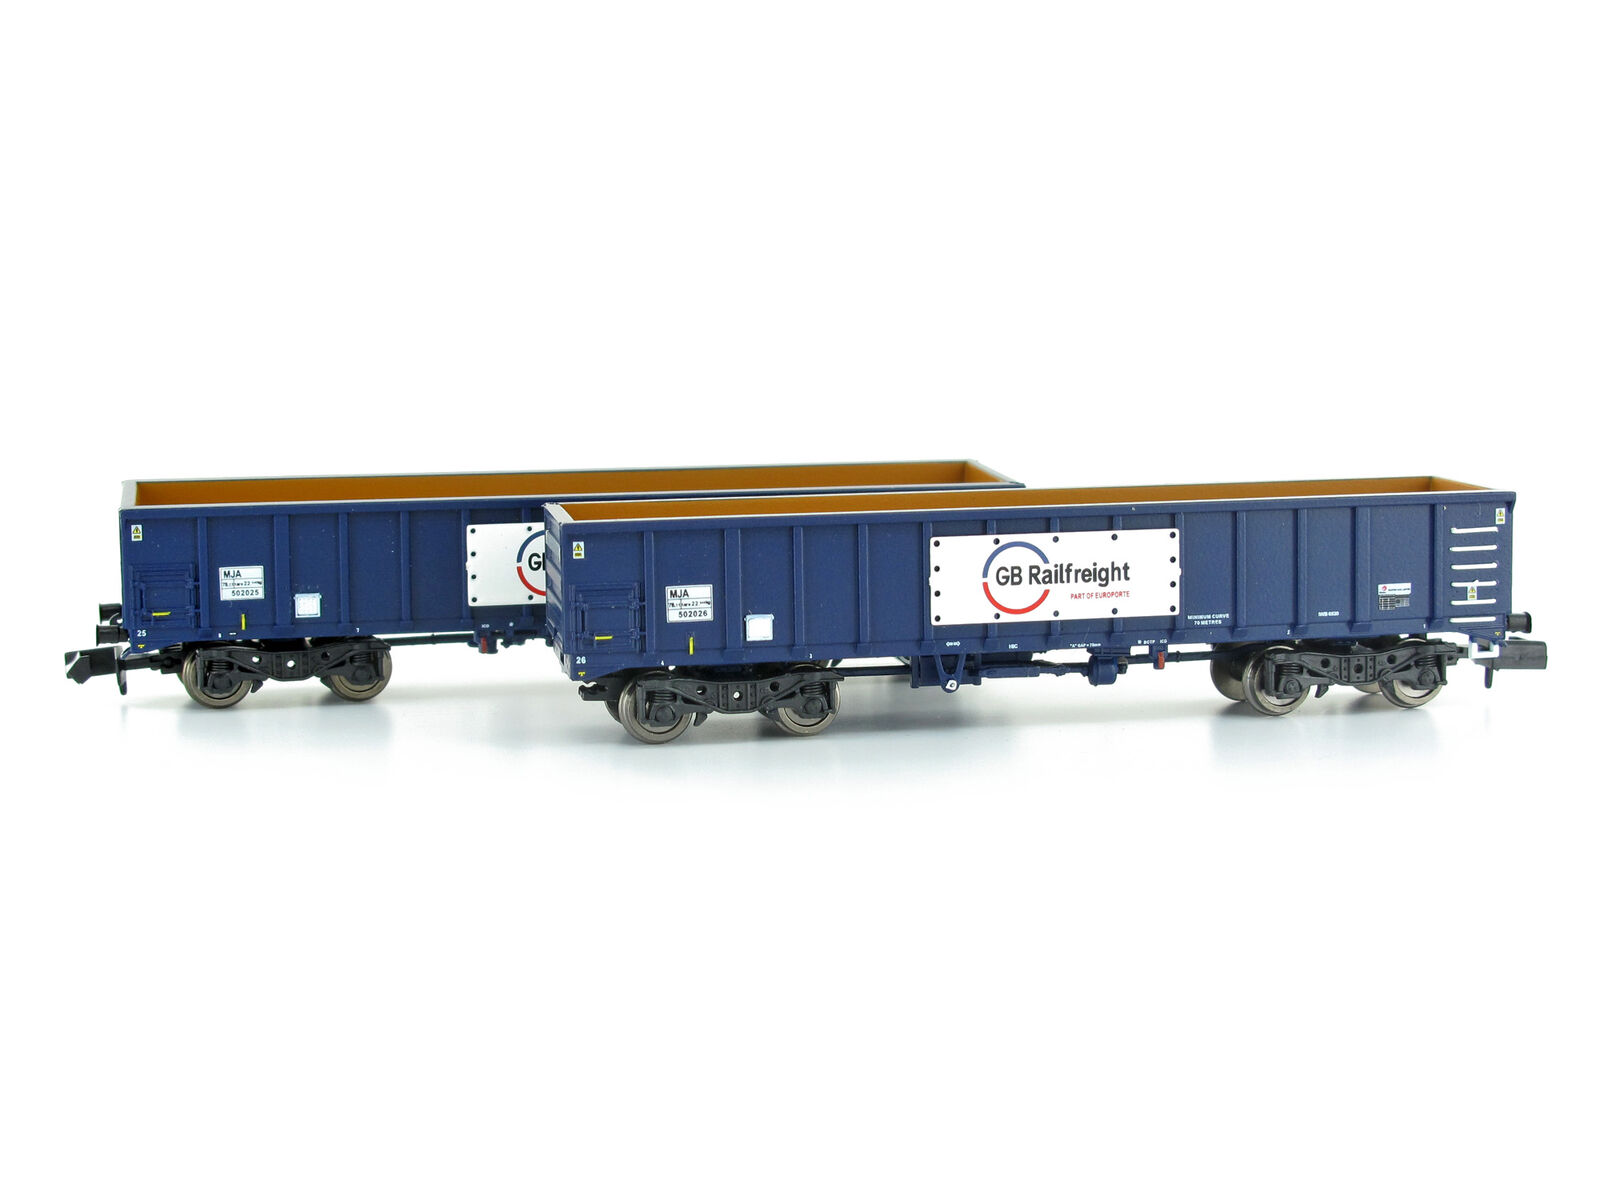 Dapol 2f-025-006 - goods Wagenset MJA BOGIE BOX VAN GB Railfreight 2 Pieces-NEW